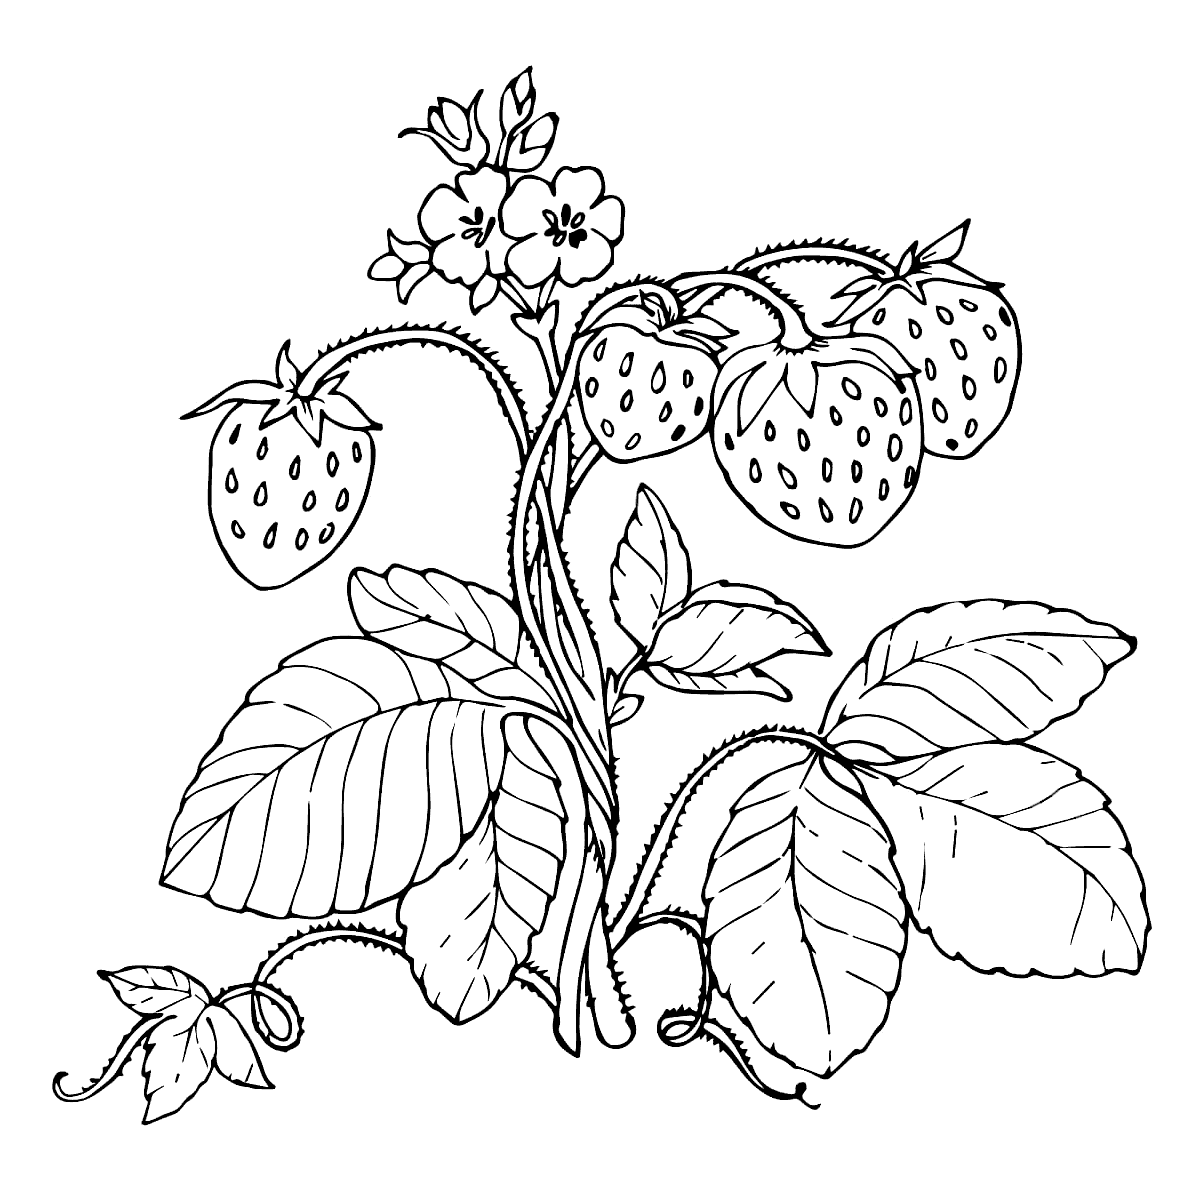 colouring pages of strawberry strawberry colouring page part 2 free resource for of strawberry colouring pages